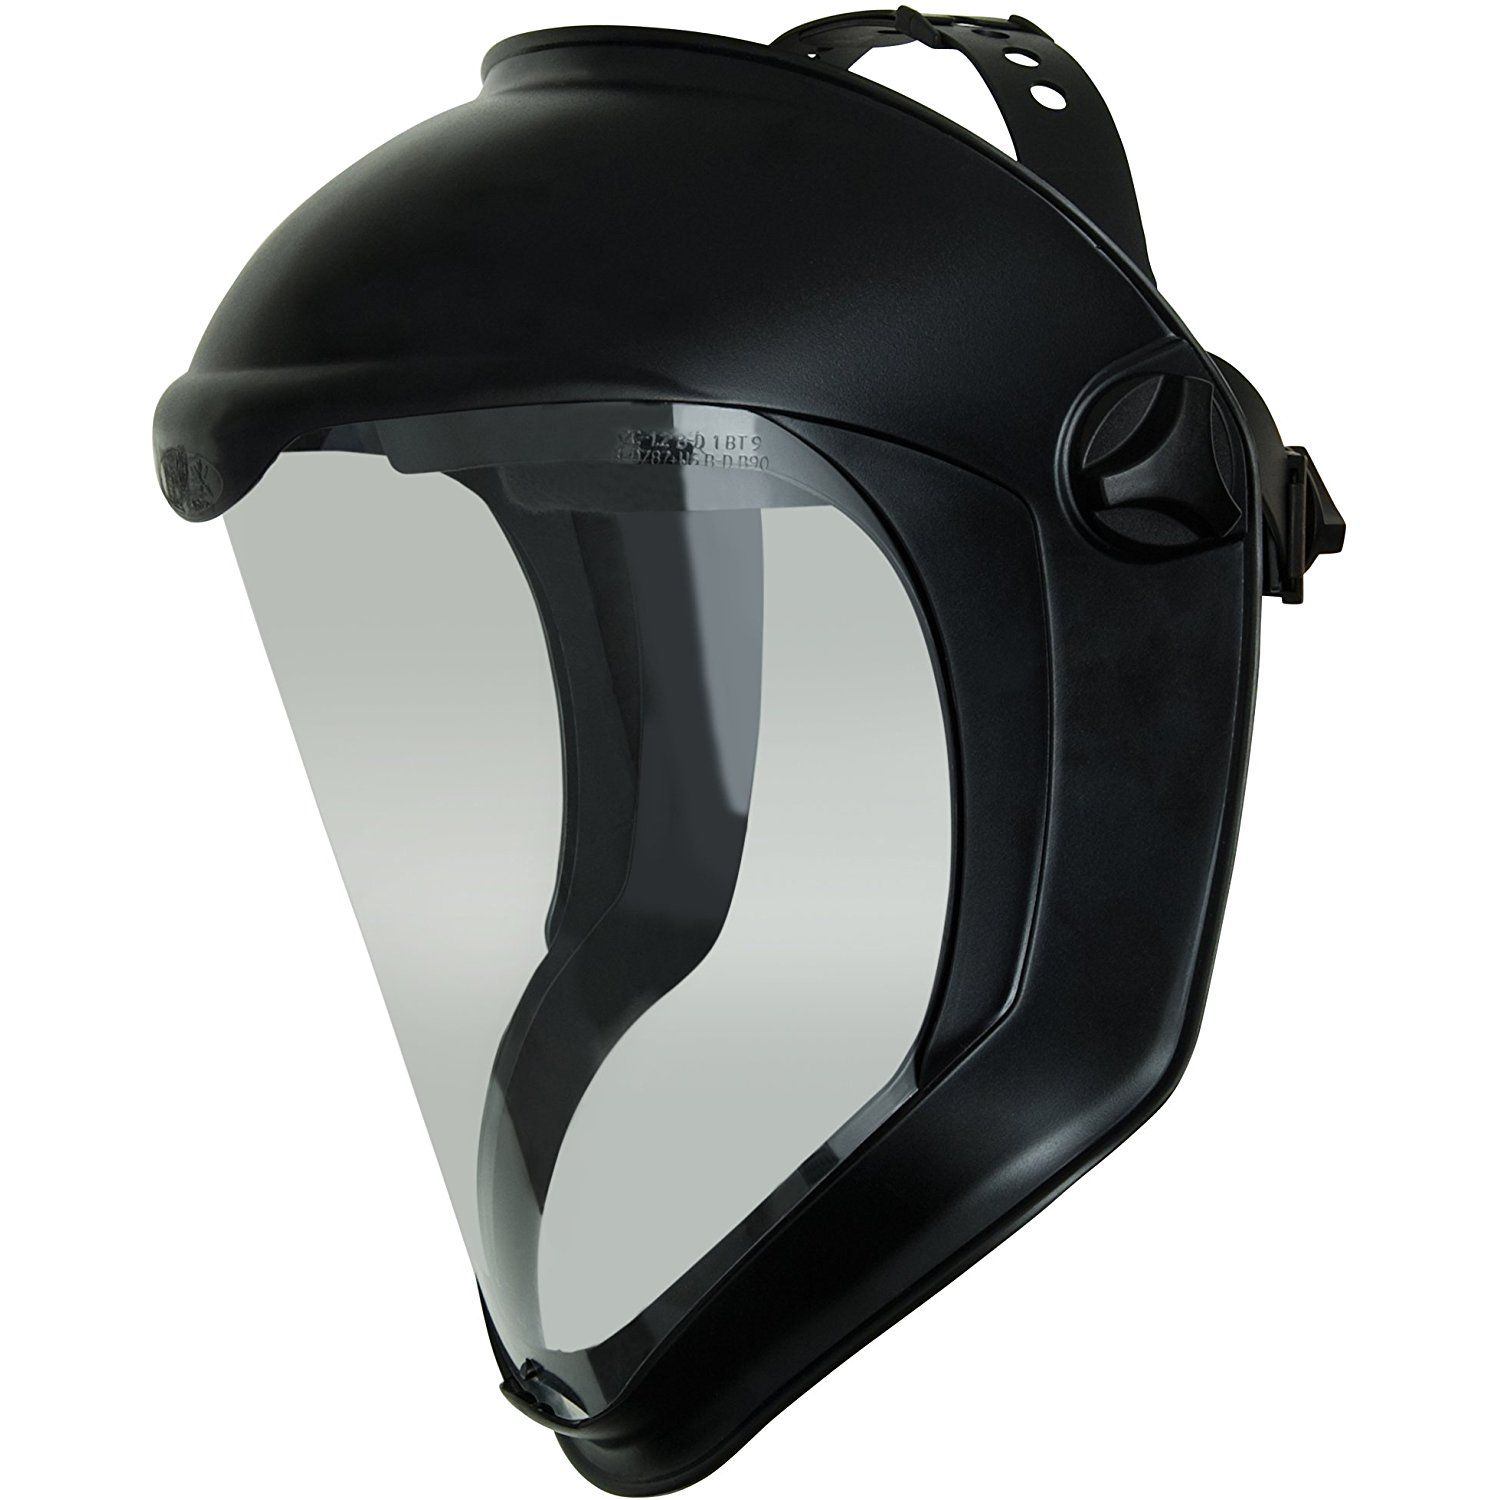 Uvex Bionic Face Shield with Clear Polycarbonate Visor